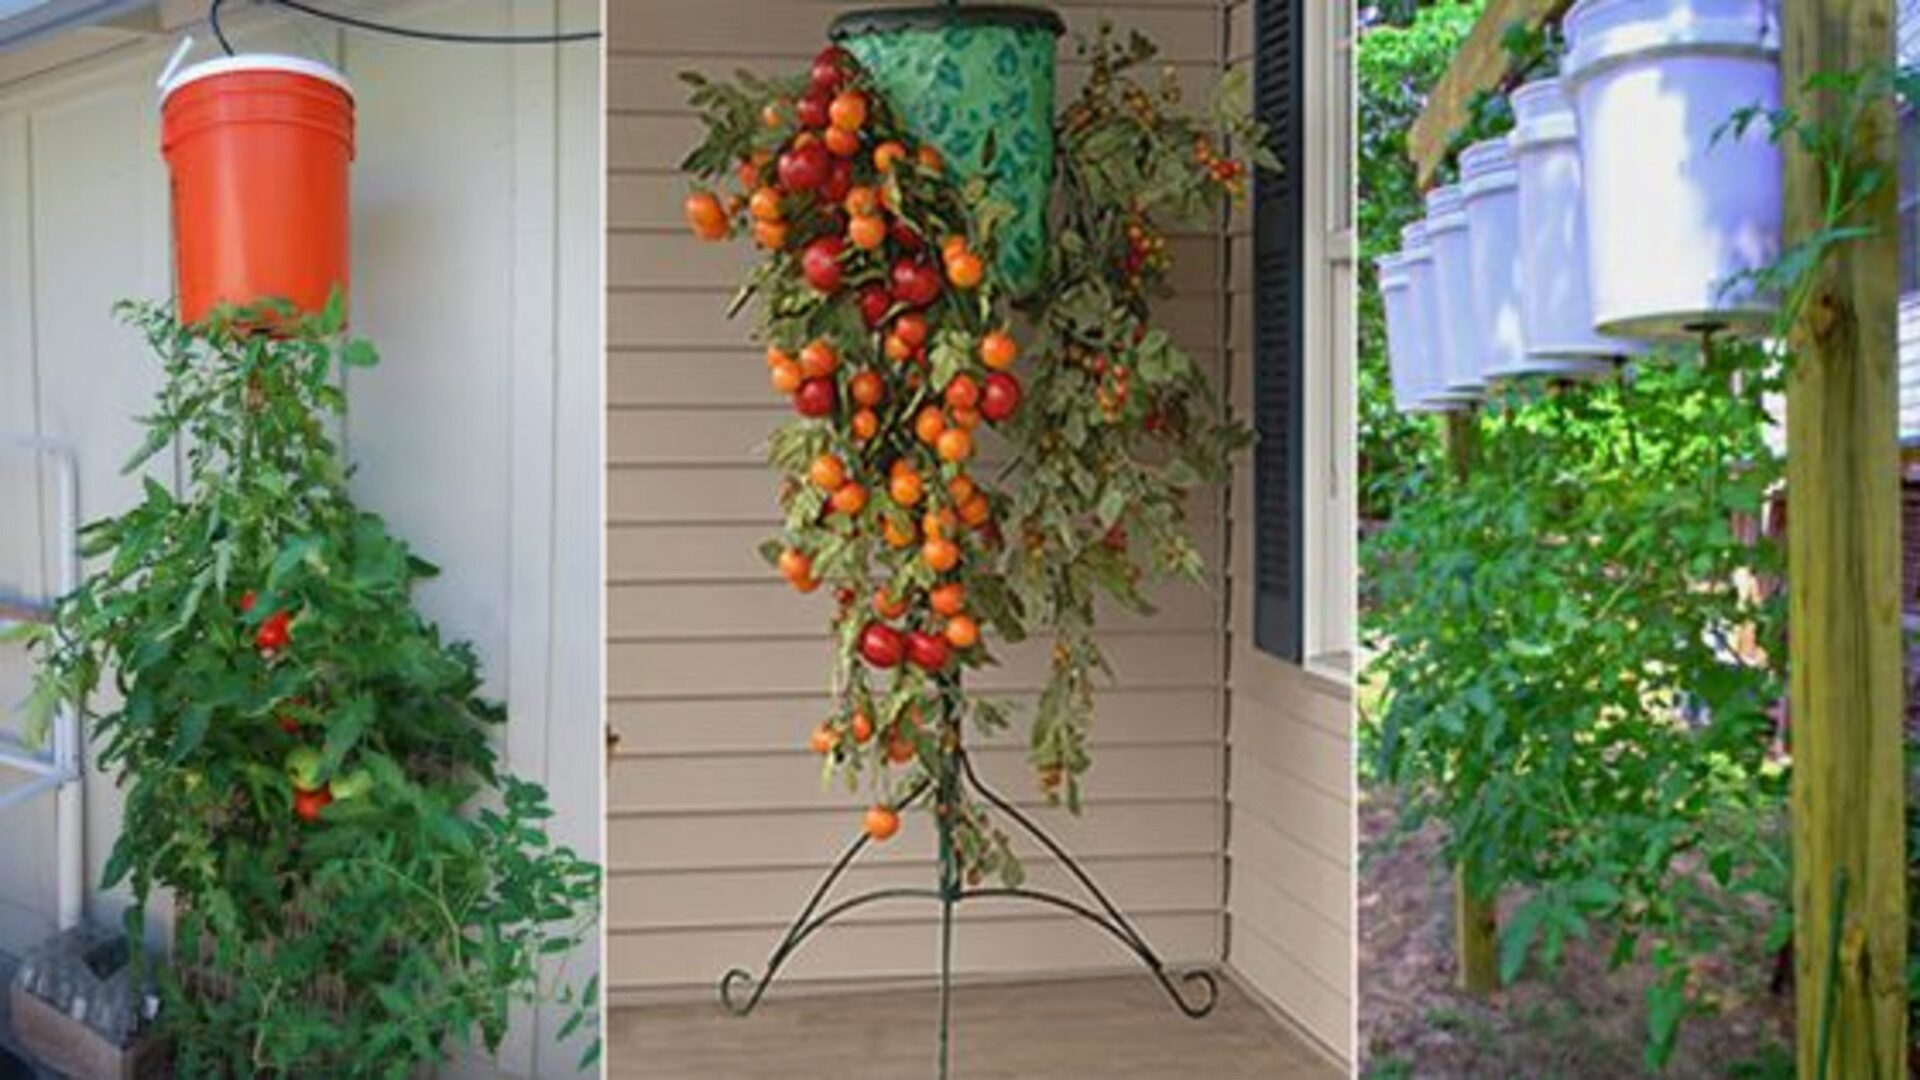 The original way of growing tomatoes